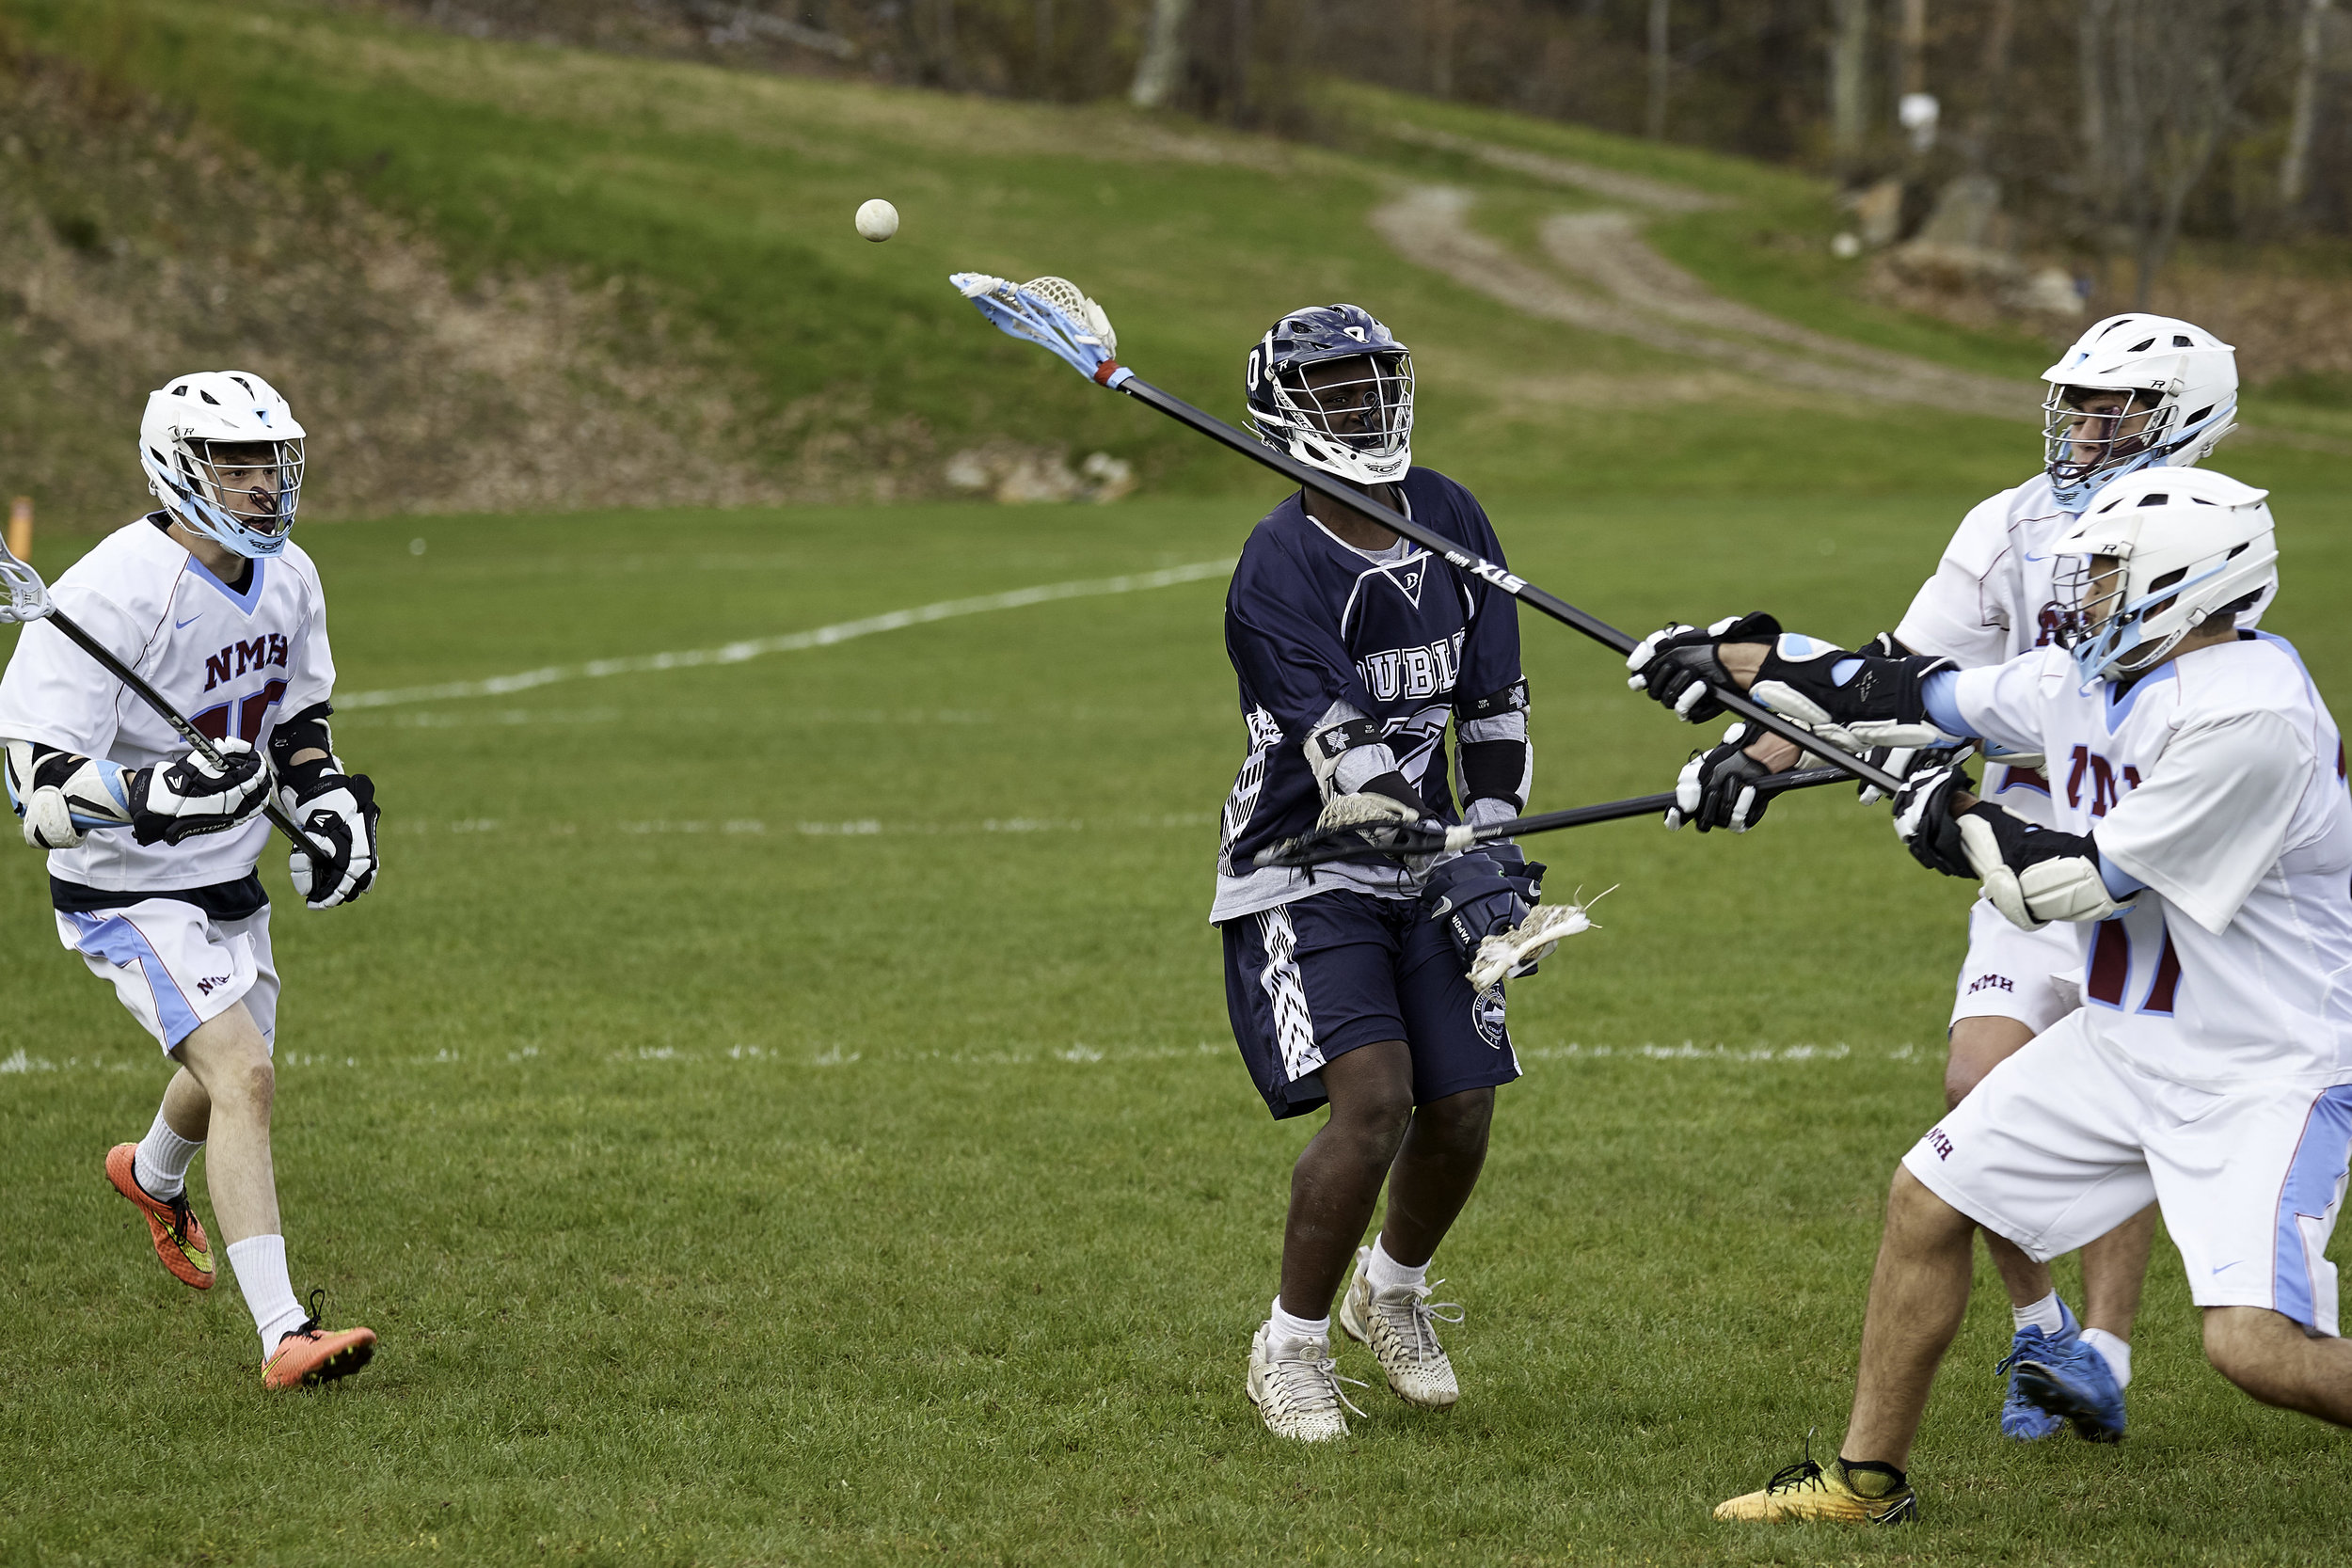 Boys Lax vs Northfield Mount Hermon JV - May 15 2019 - 0053.jpg